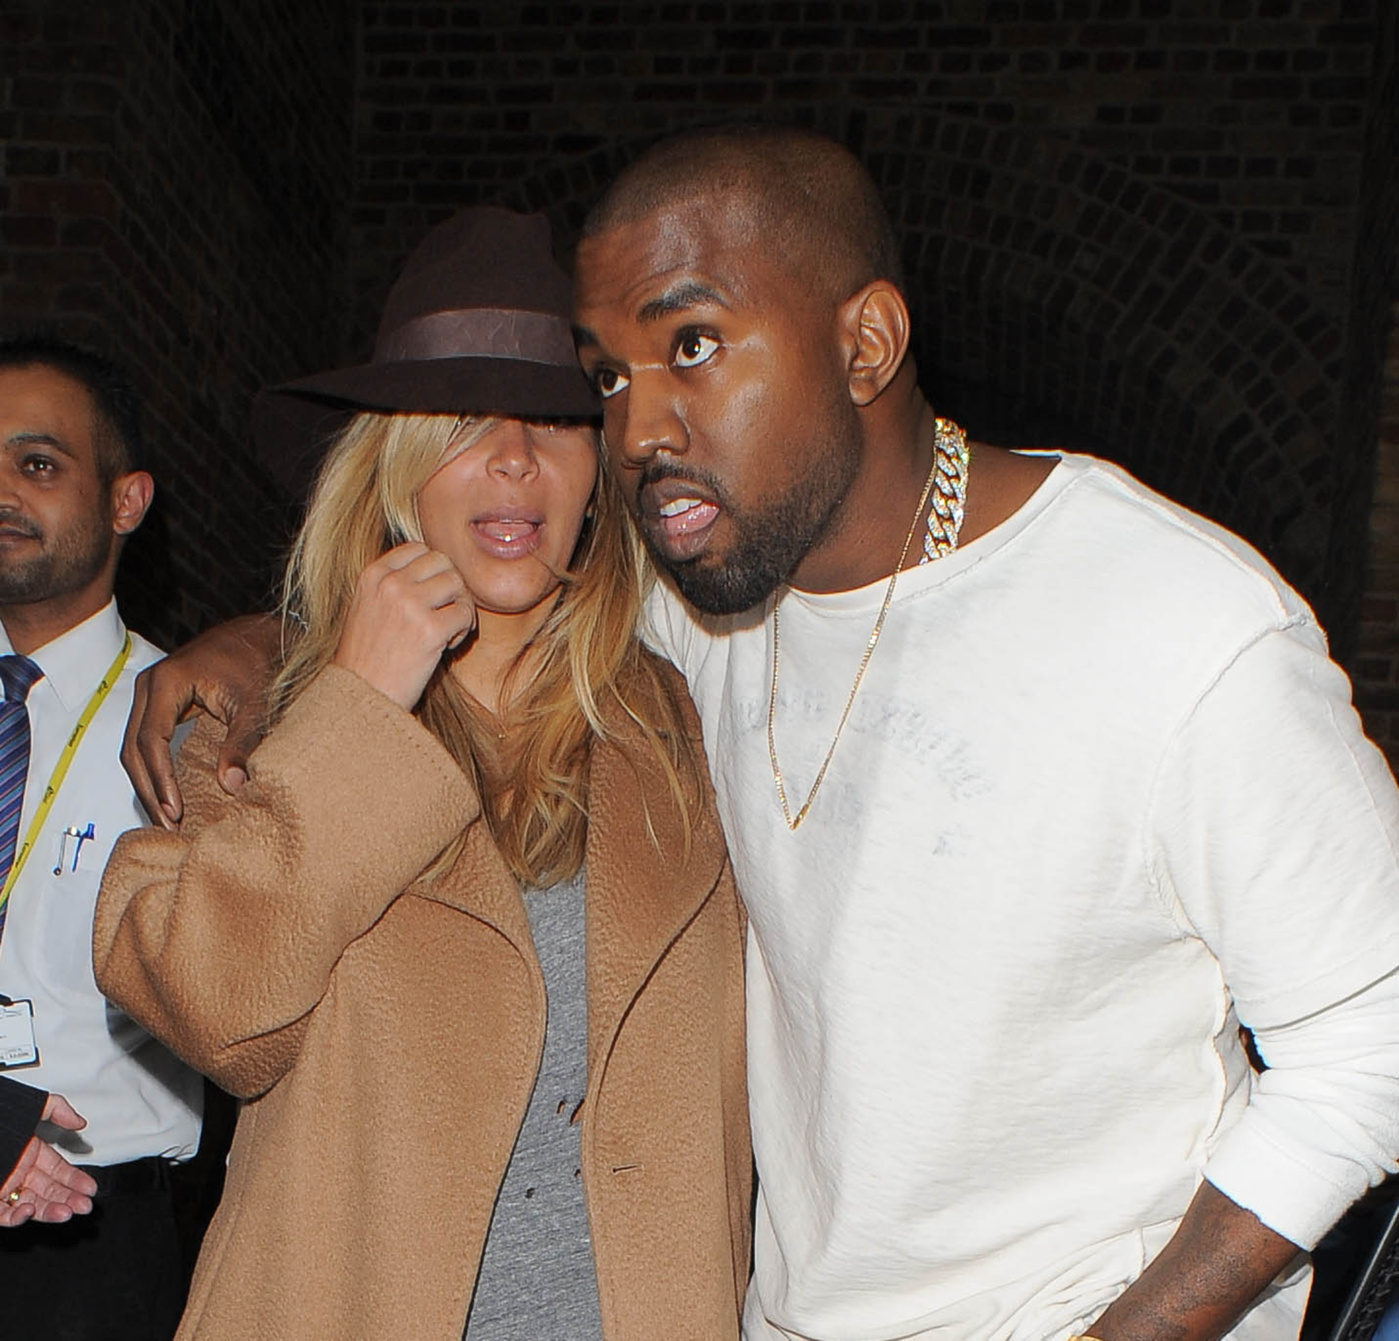 Kim Kardashian and Kanye West seen arriving at Eurostar's station in London